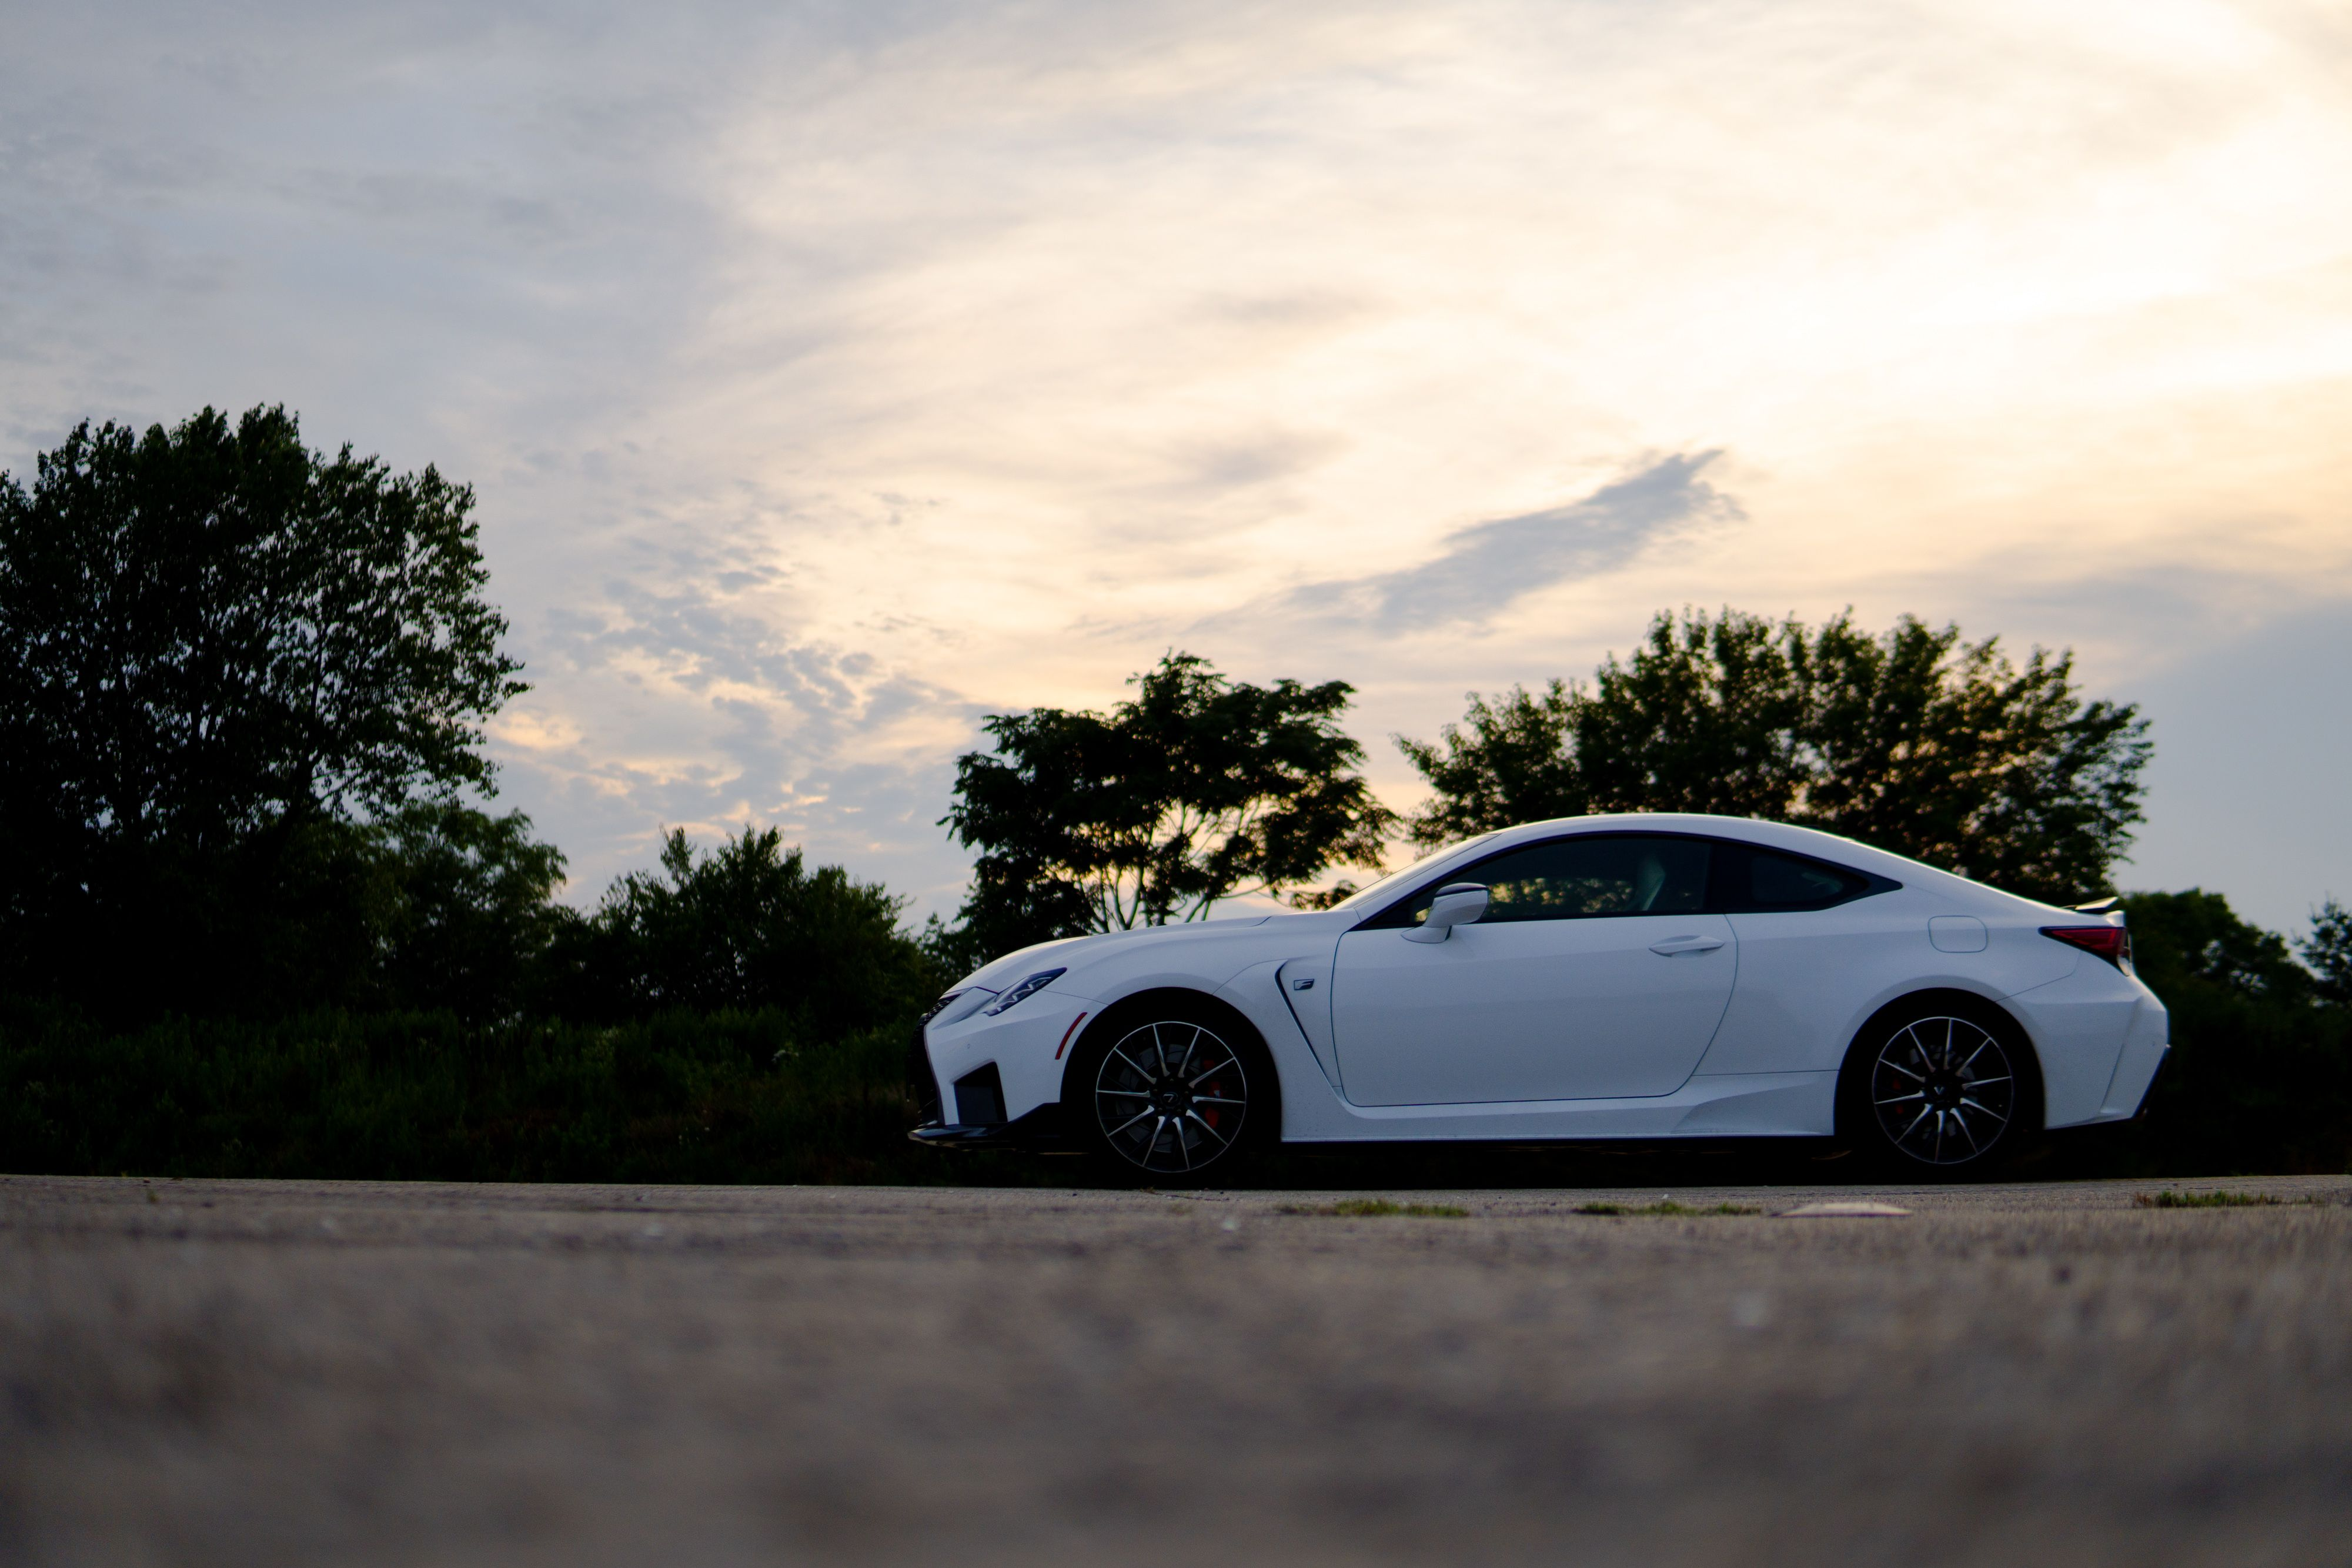 The 2020 Lexus RC F Is a Great V-8 Coupe Hampered by Old Tech